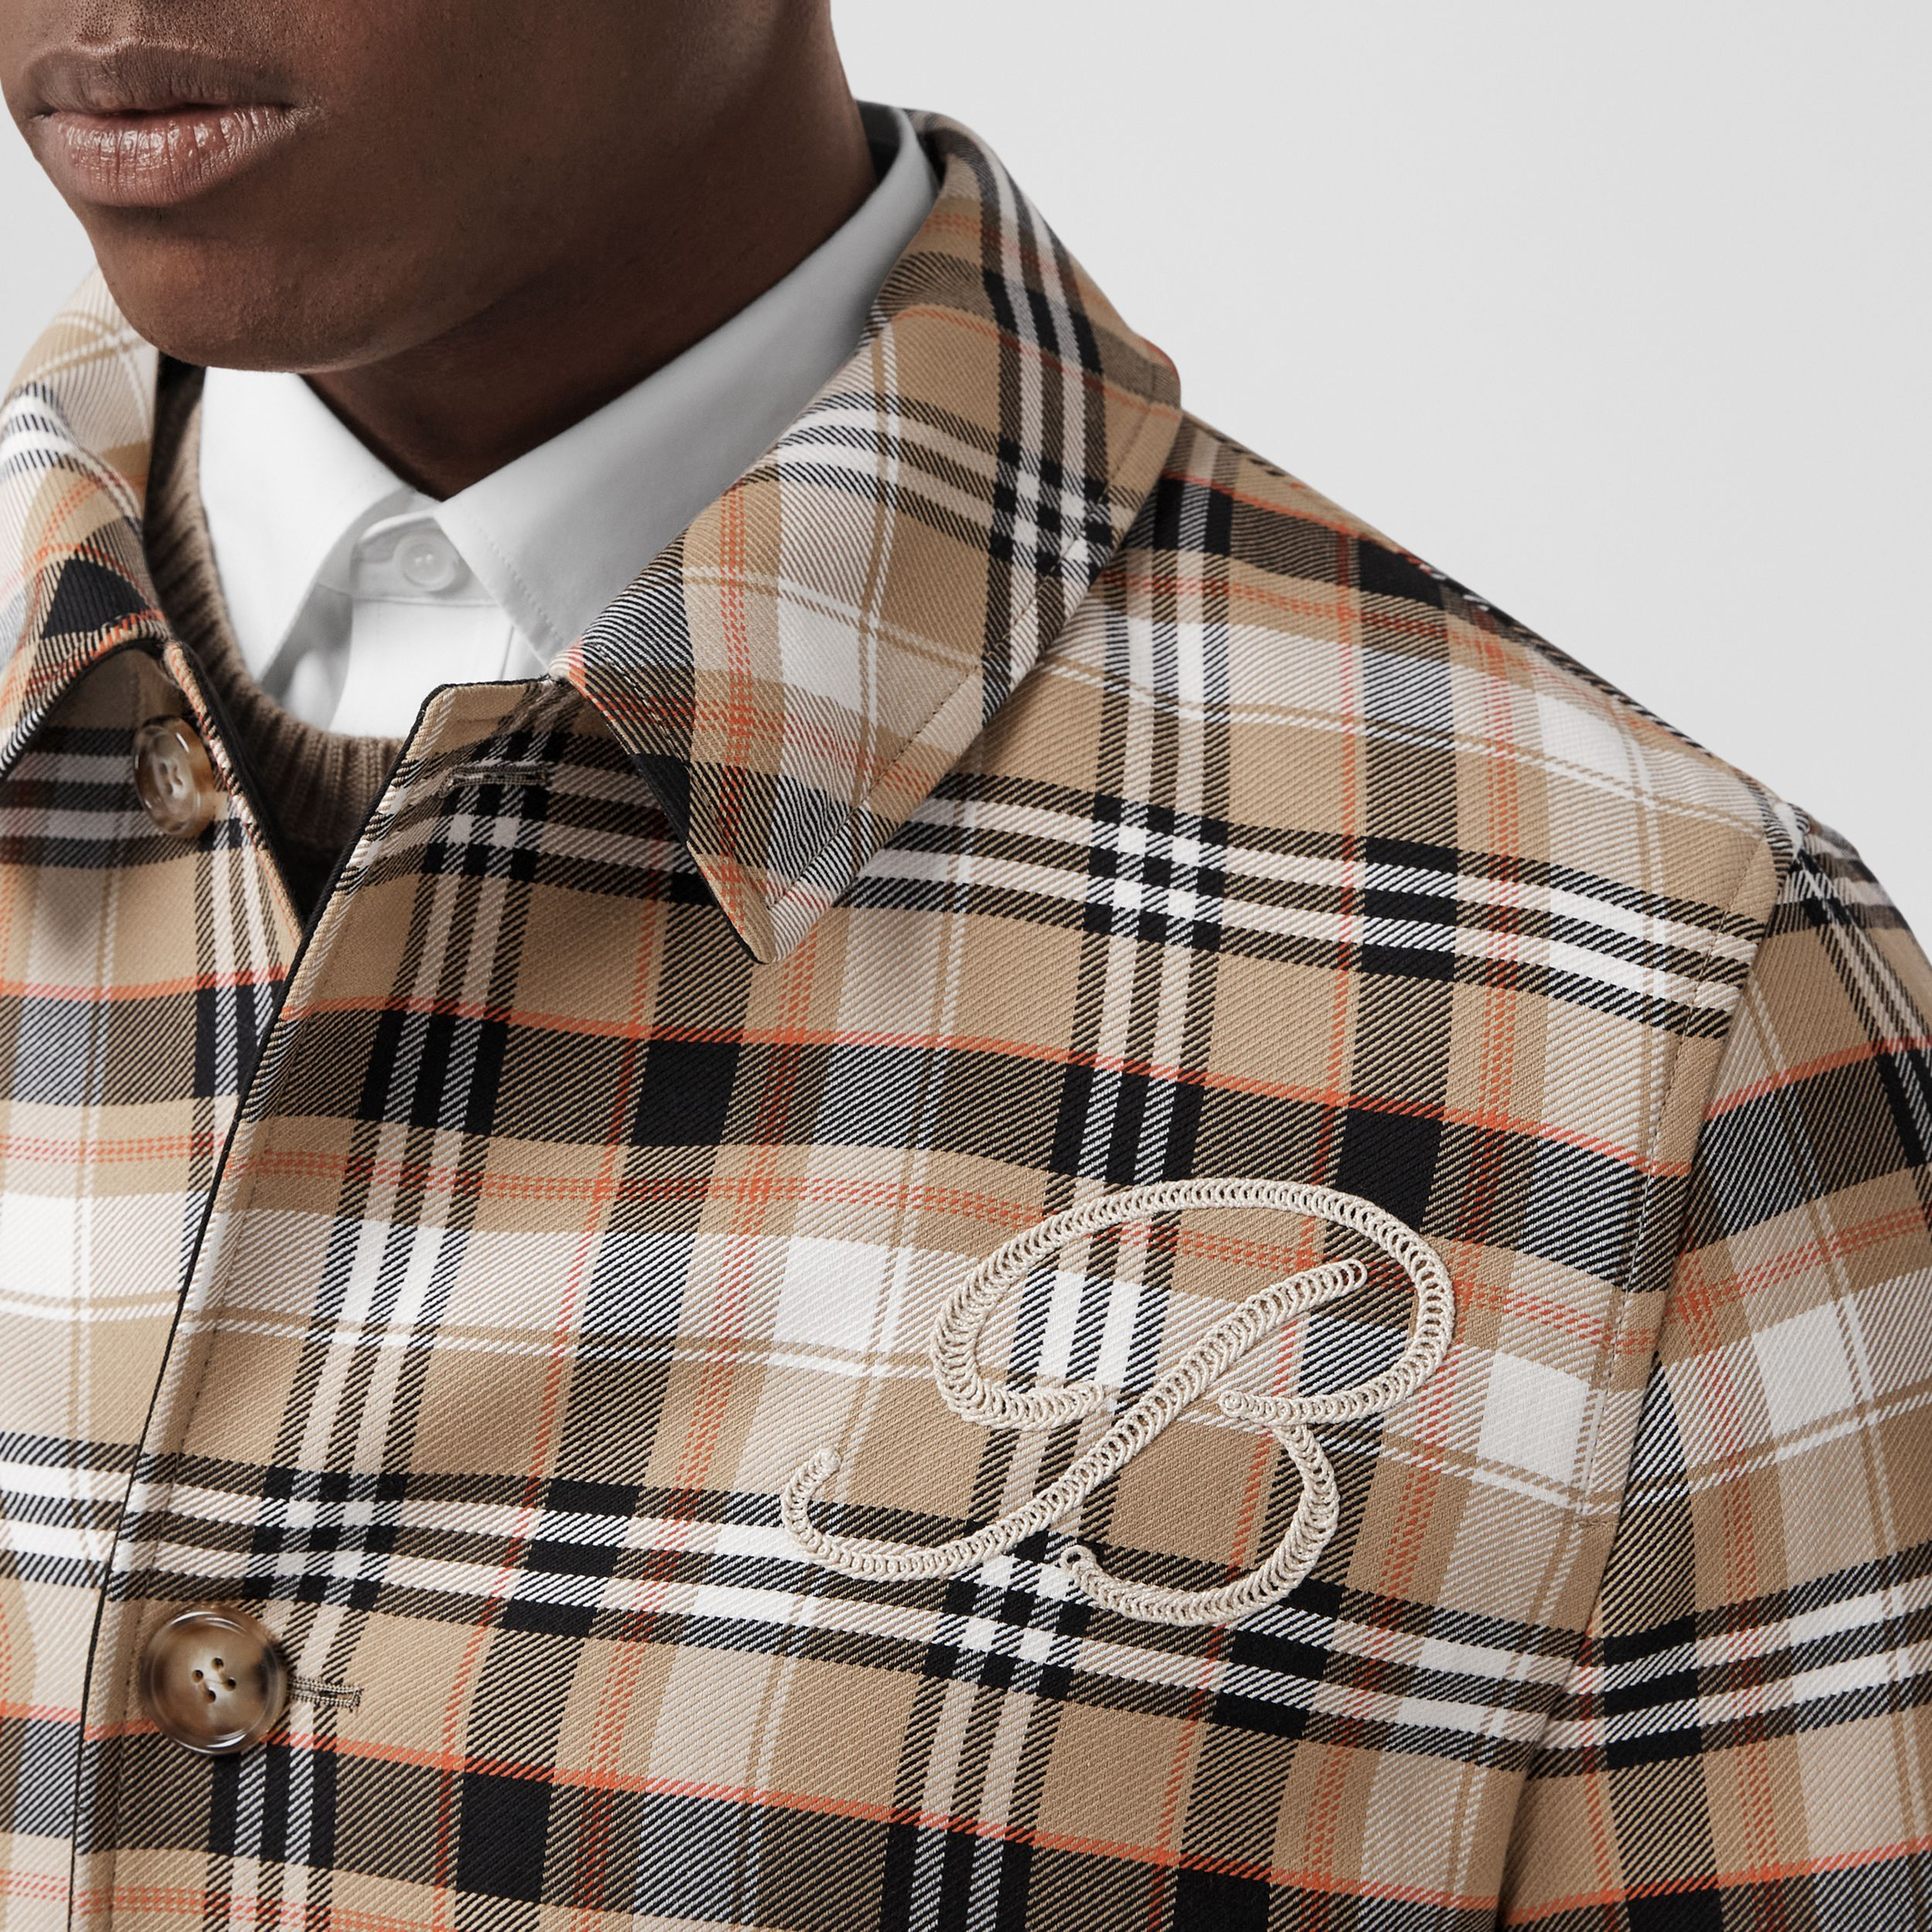 Reversible Check Wool Cotton Car Coat in Archive Beige - Men | Burberry United Kingdom - 2